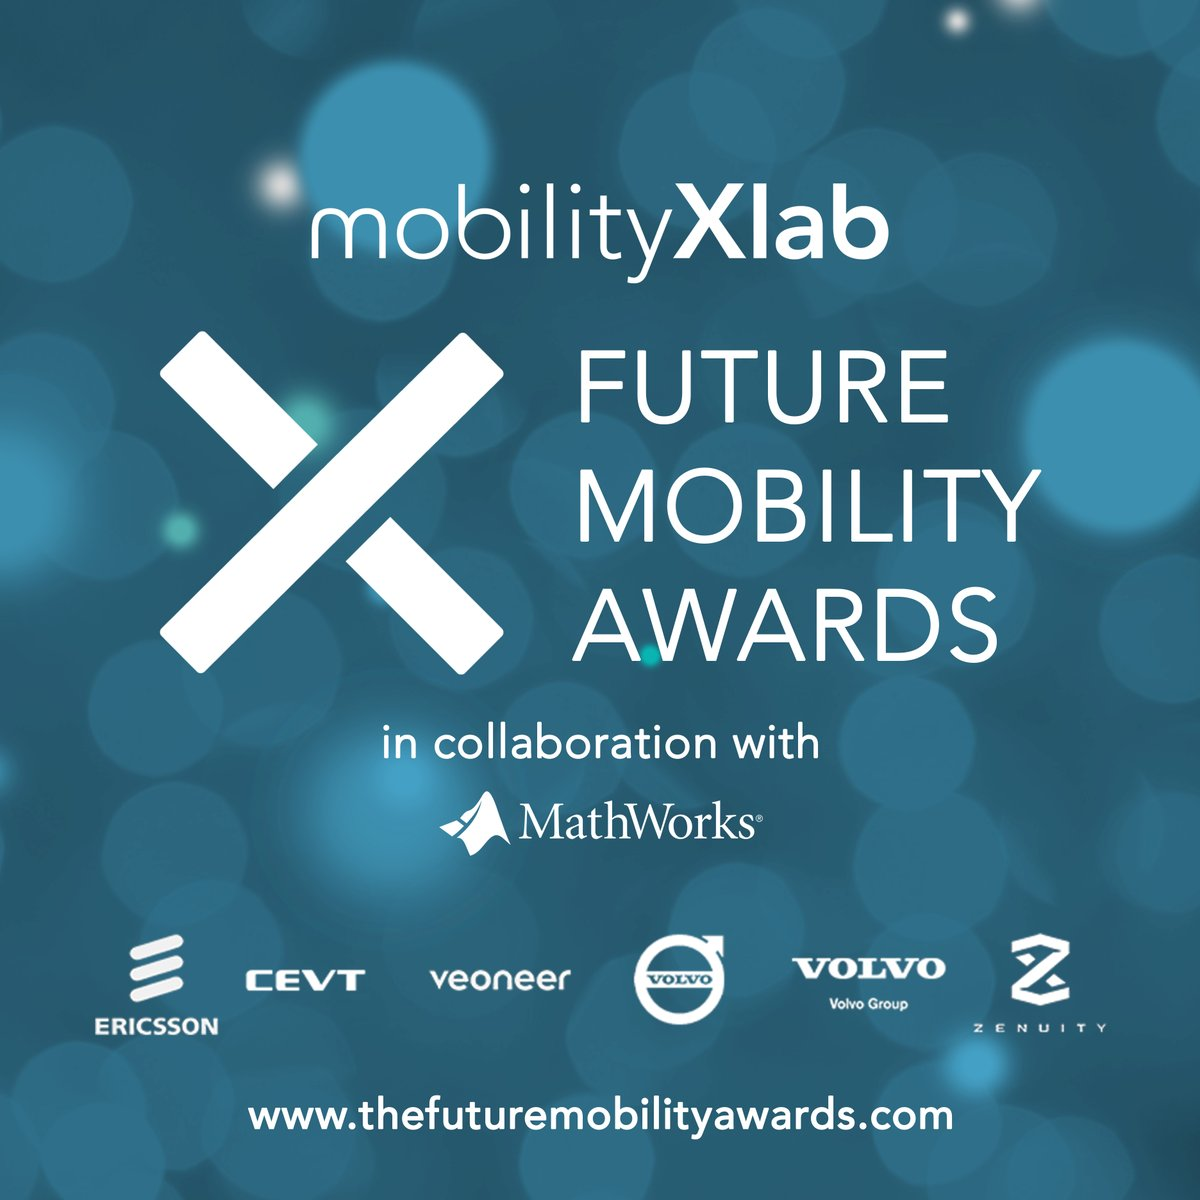 MobilityXlab is proud to announce the Future Mobility Awards in collaboration with @MathWorks. With these awards, we want to celebrate upcoming companies that bring new innovations to the industry. Are you one of them? Apply through https://t.co/jUWfOsXgzS by August 21st. https://t.co/1Y8SMLia87